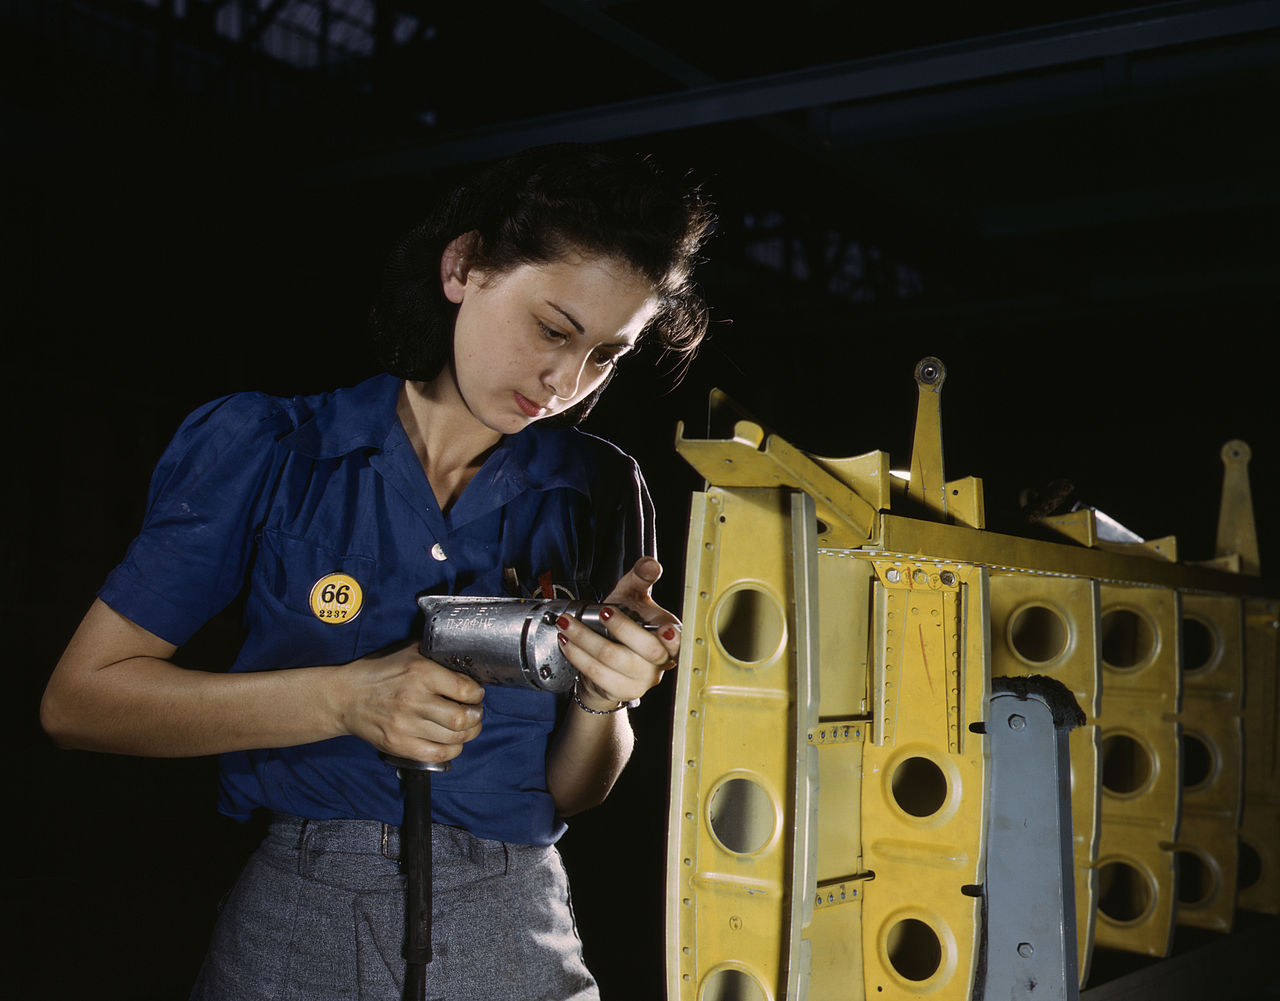 1280px-Operating_a_hand_drill_this_woman_worker_is_shown_working_on_the_horizontal_stabilizer